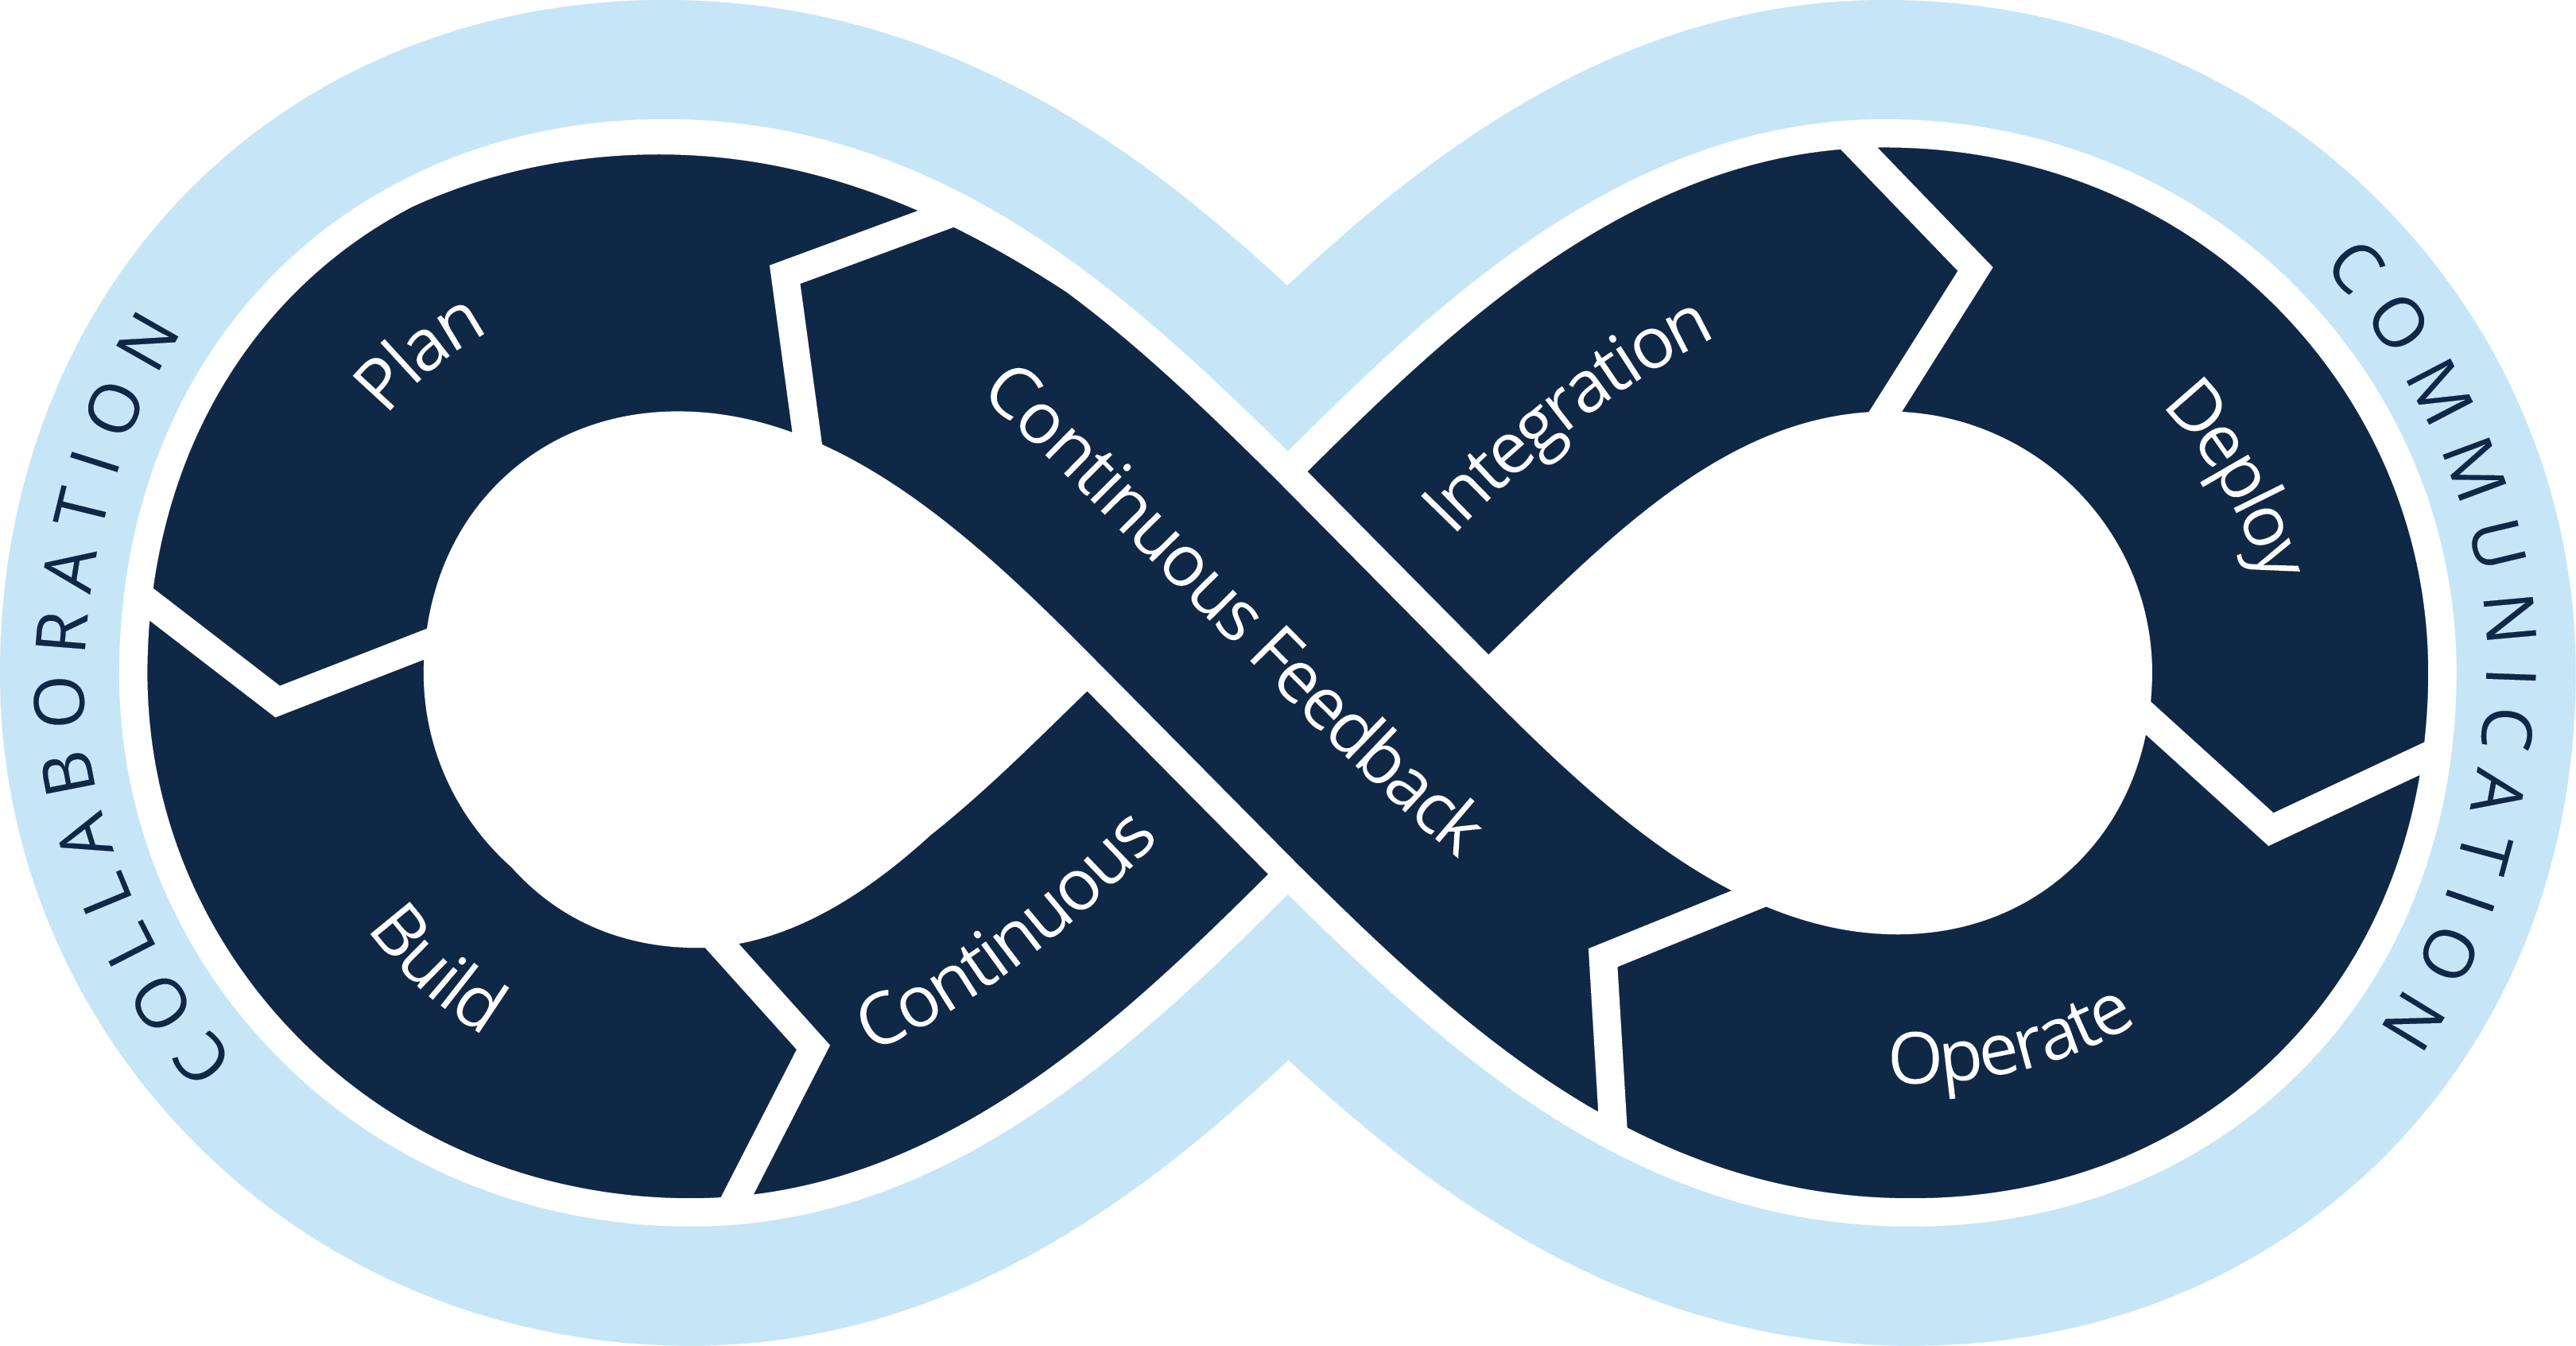 Illustration showing an infinity-shaped spiral explaining DevOps